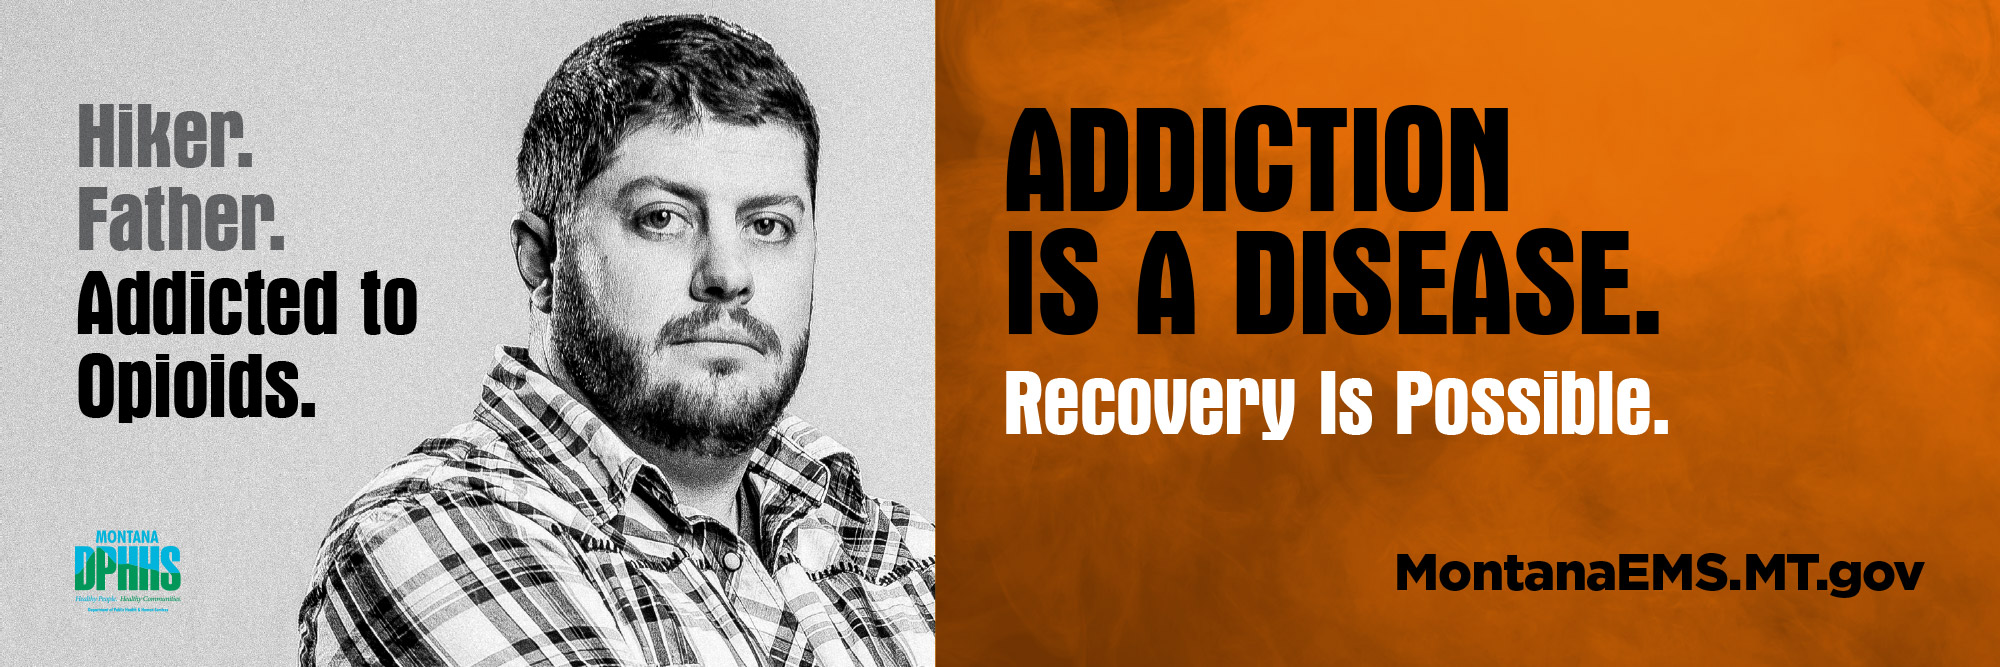 Montana DPHHS, Addicted to opiods campaign billboard